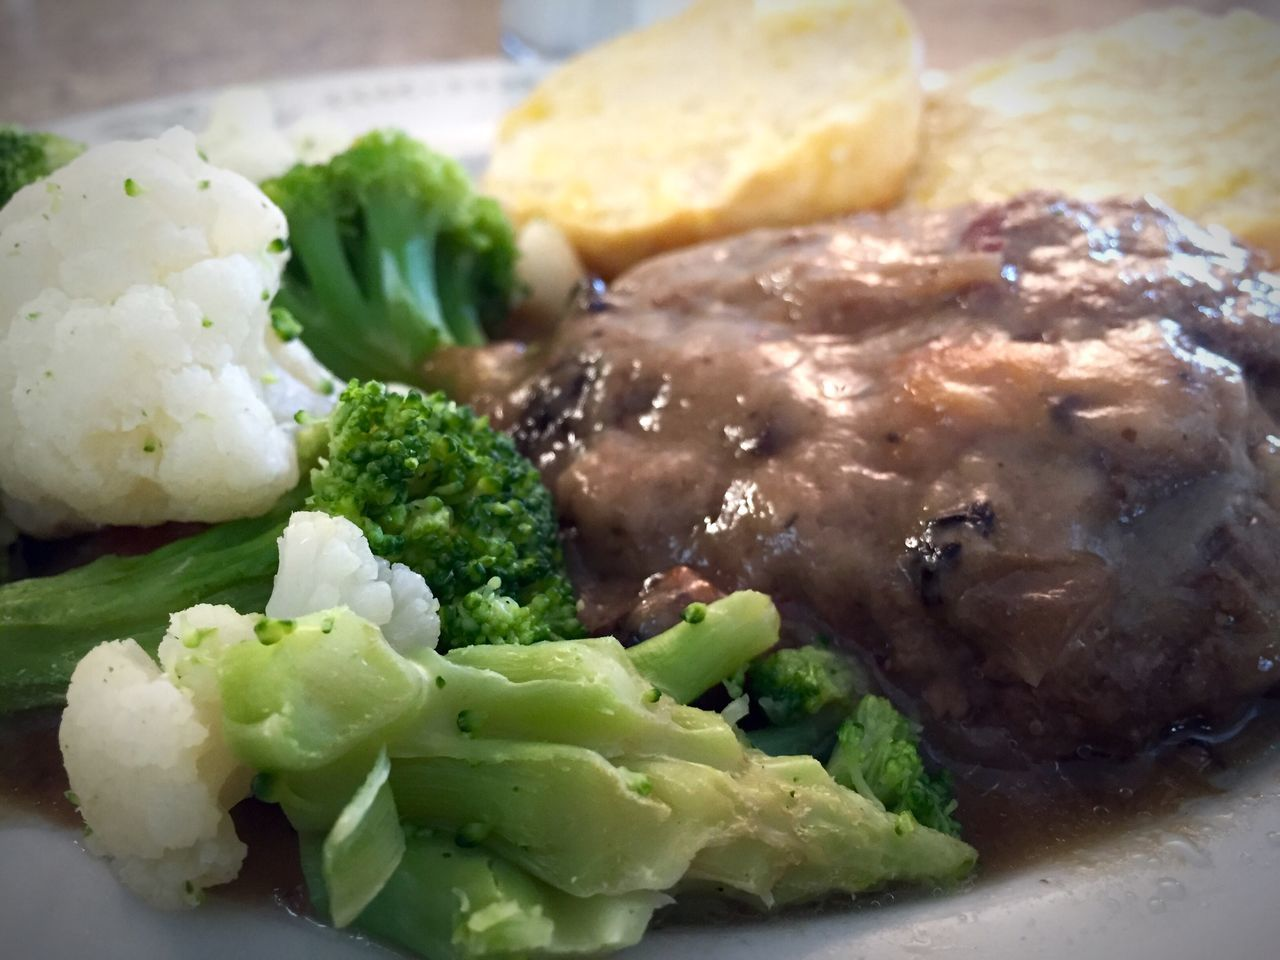 Hamburger steak with mushroom gravy and a side of broccoli & cauliflower. Biscuits Brocolli Cauliflower Close-up Focus On Foreground Food Freshness Hamburger Hamburger Steak Indulgence Lettuce Meal Meat Mushroom Gravy No People Ready-to-eat Selective Focus Served Serving Size Still Life Stuffed Temptation